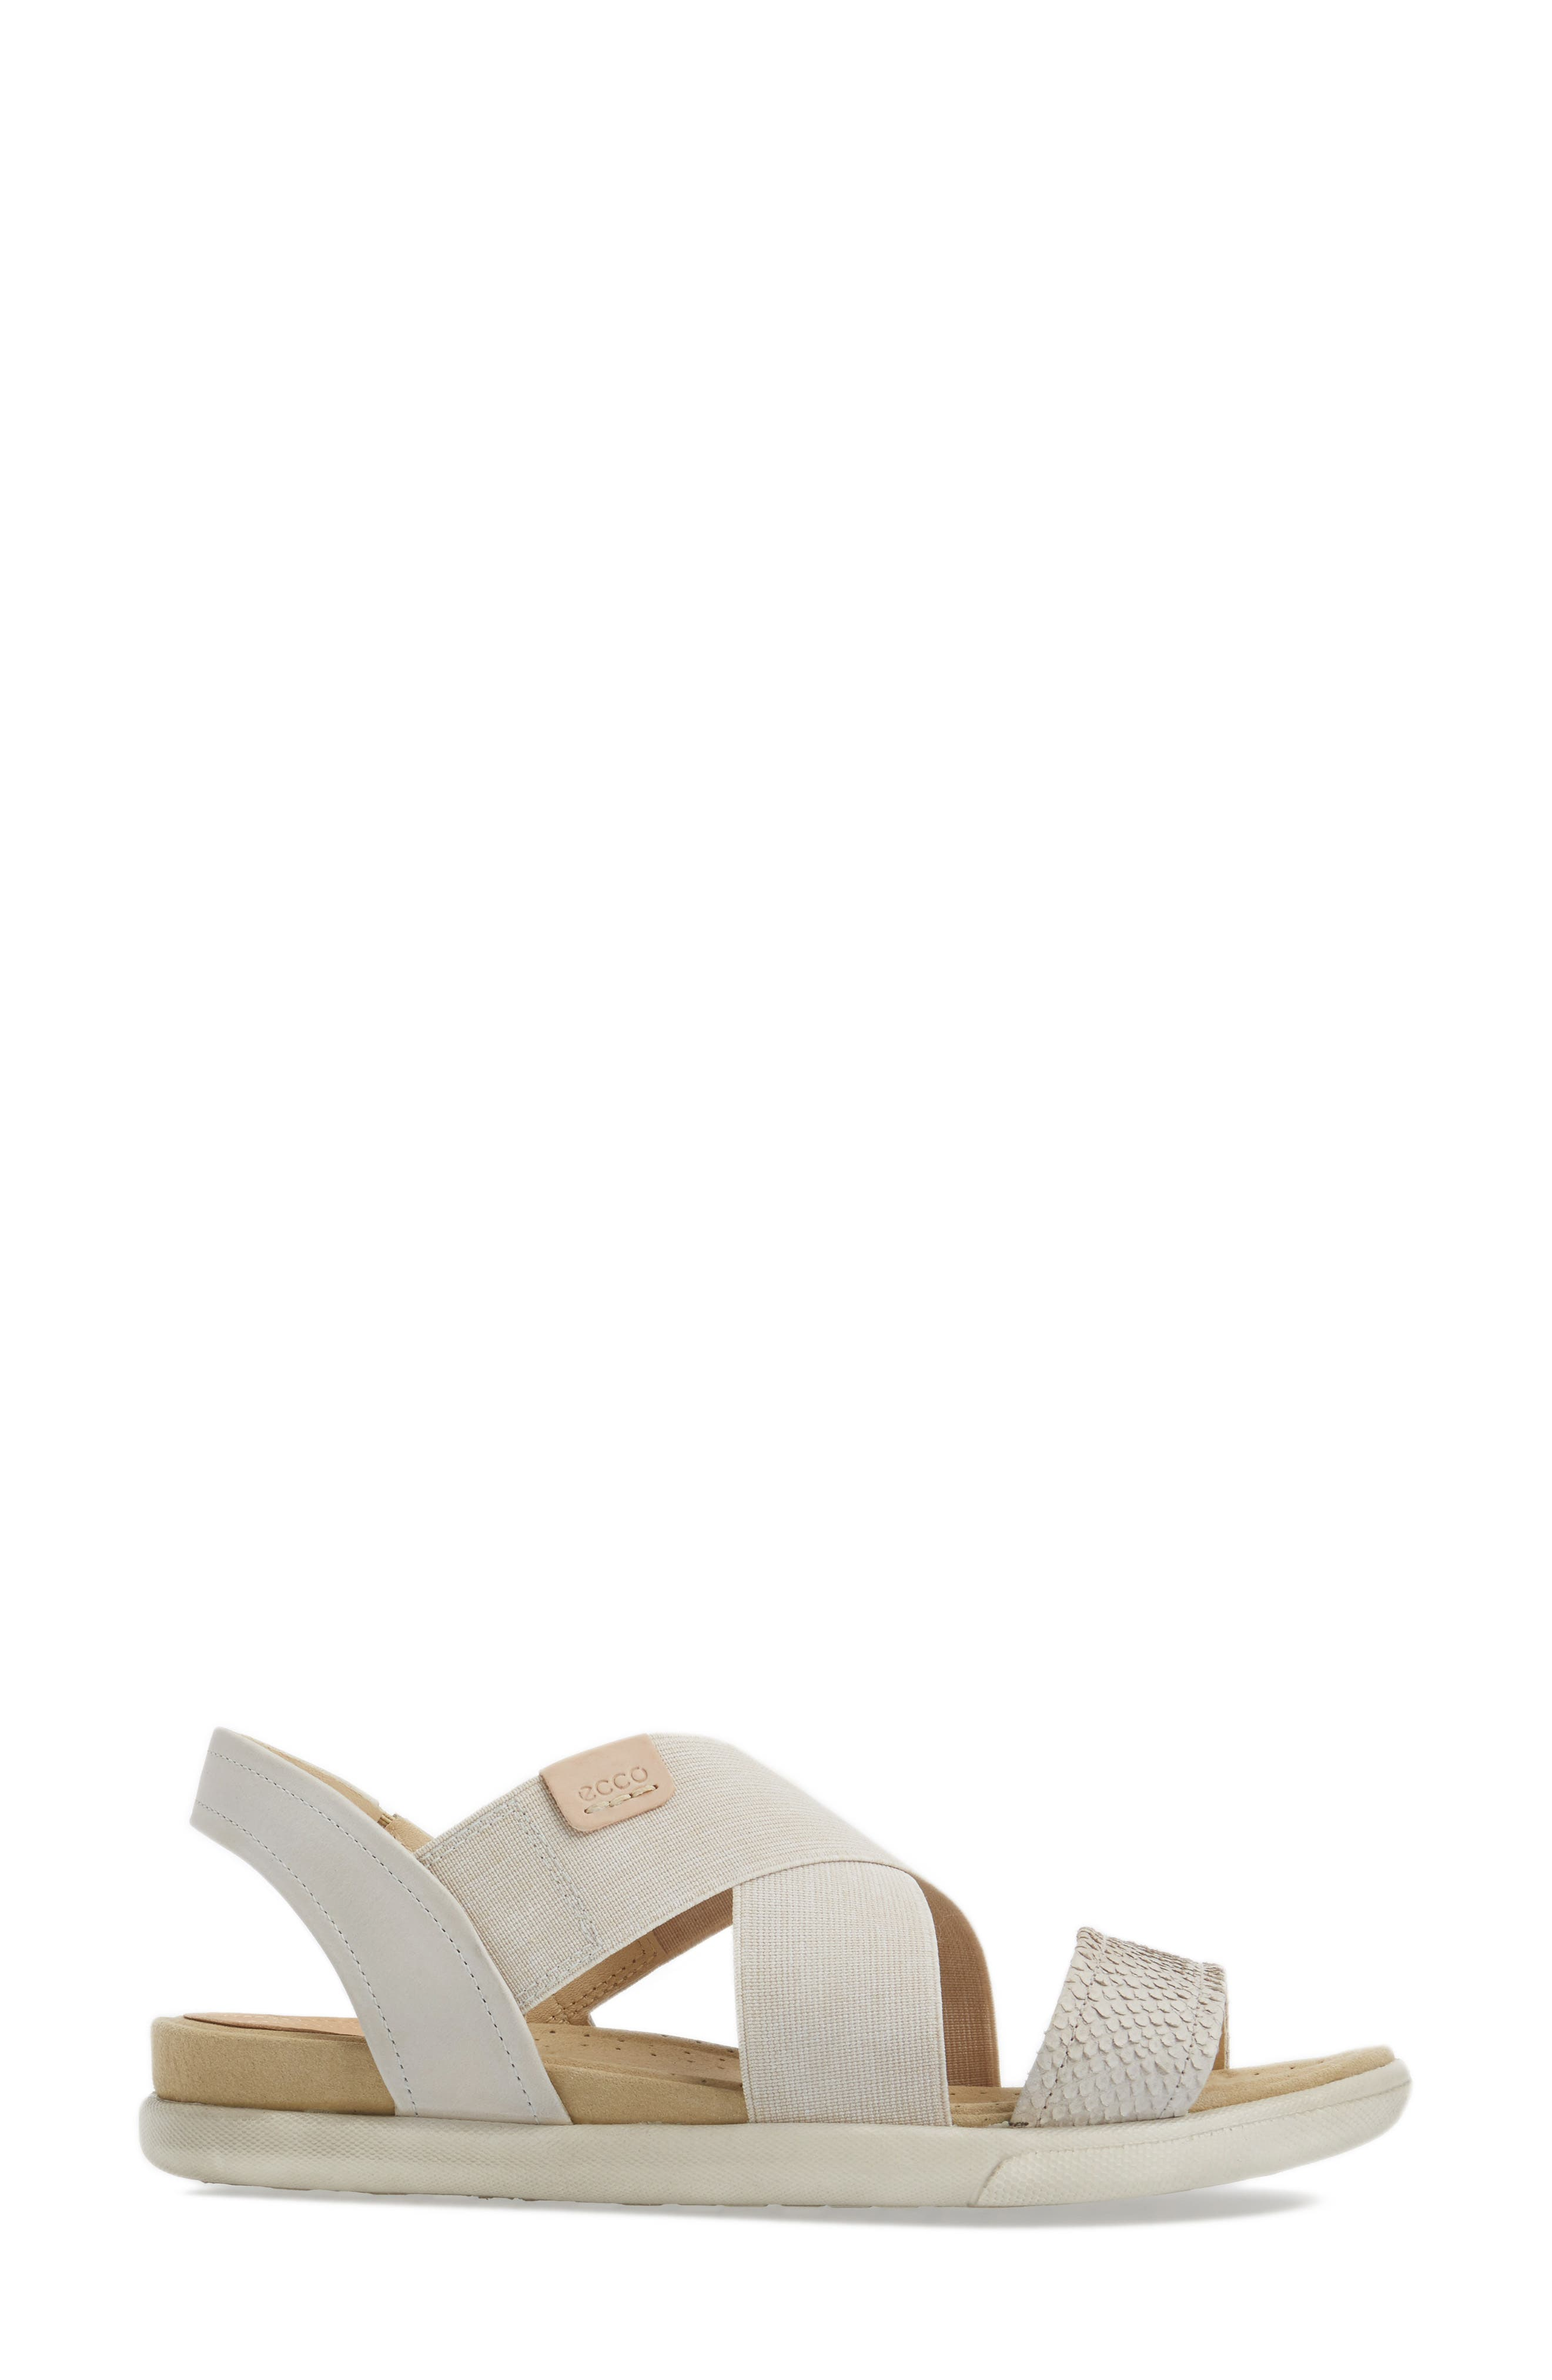 Damara Cross-Strap Sandal,                             Alternate thumbnail 21, color,